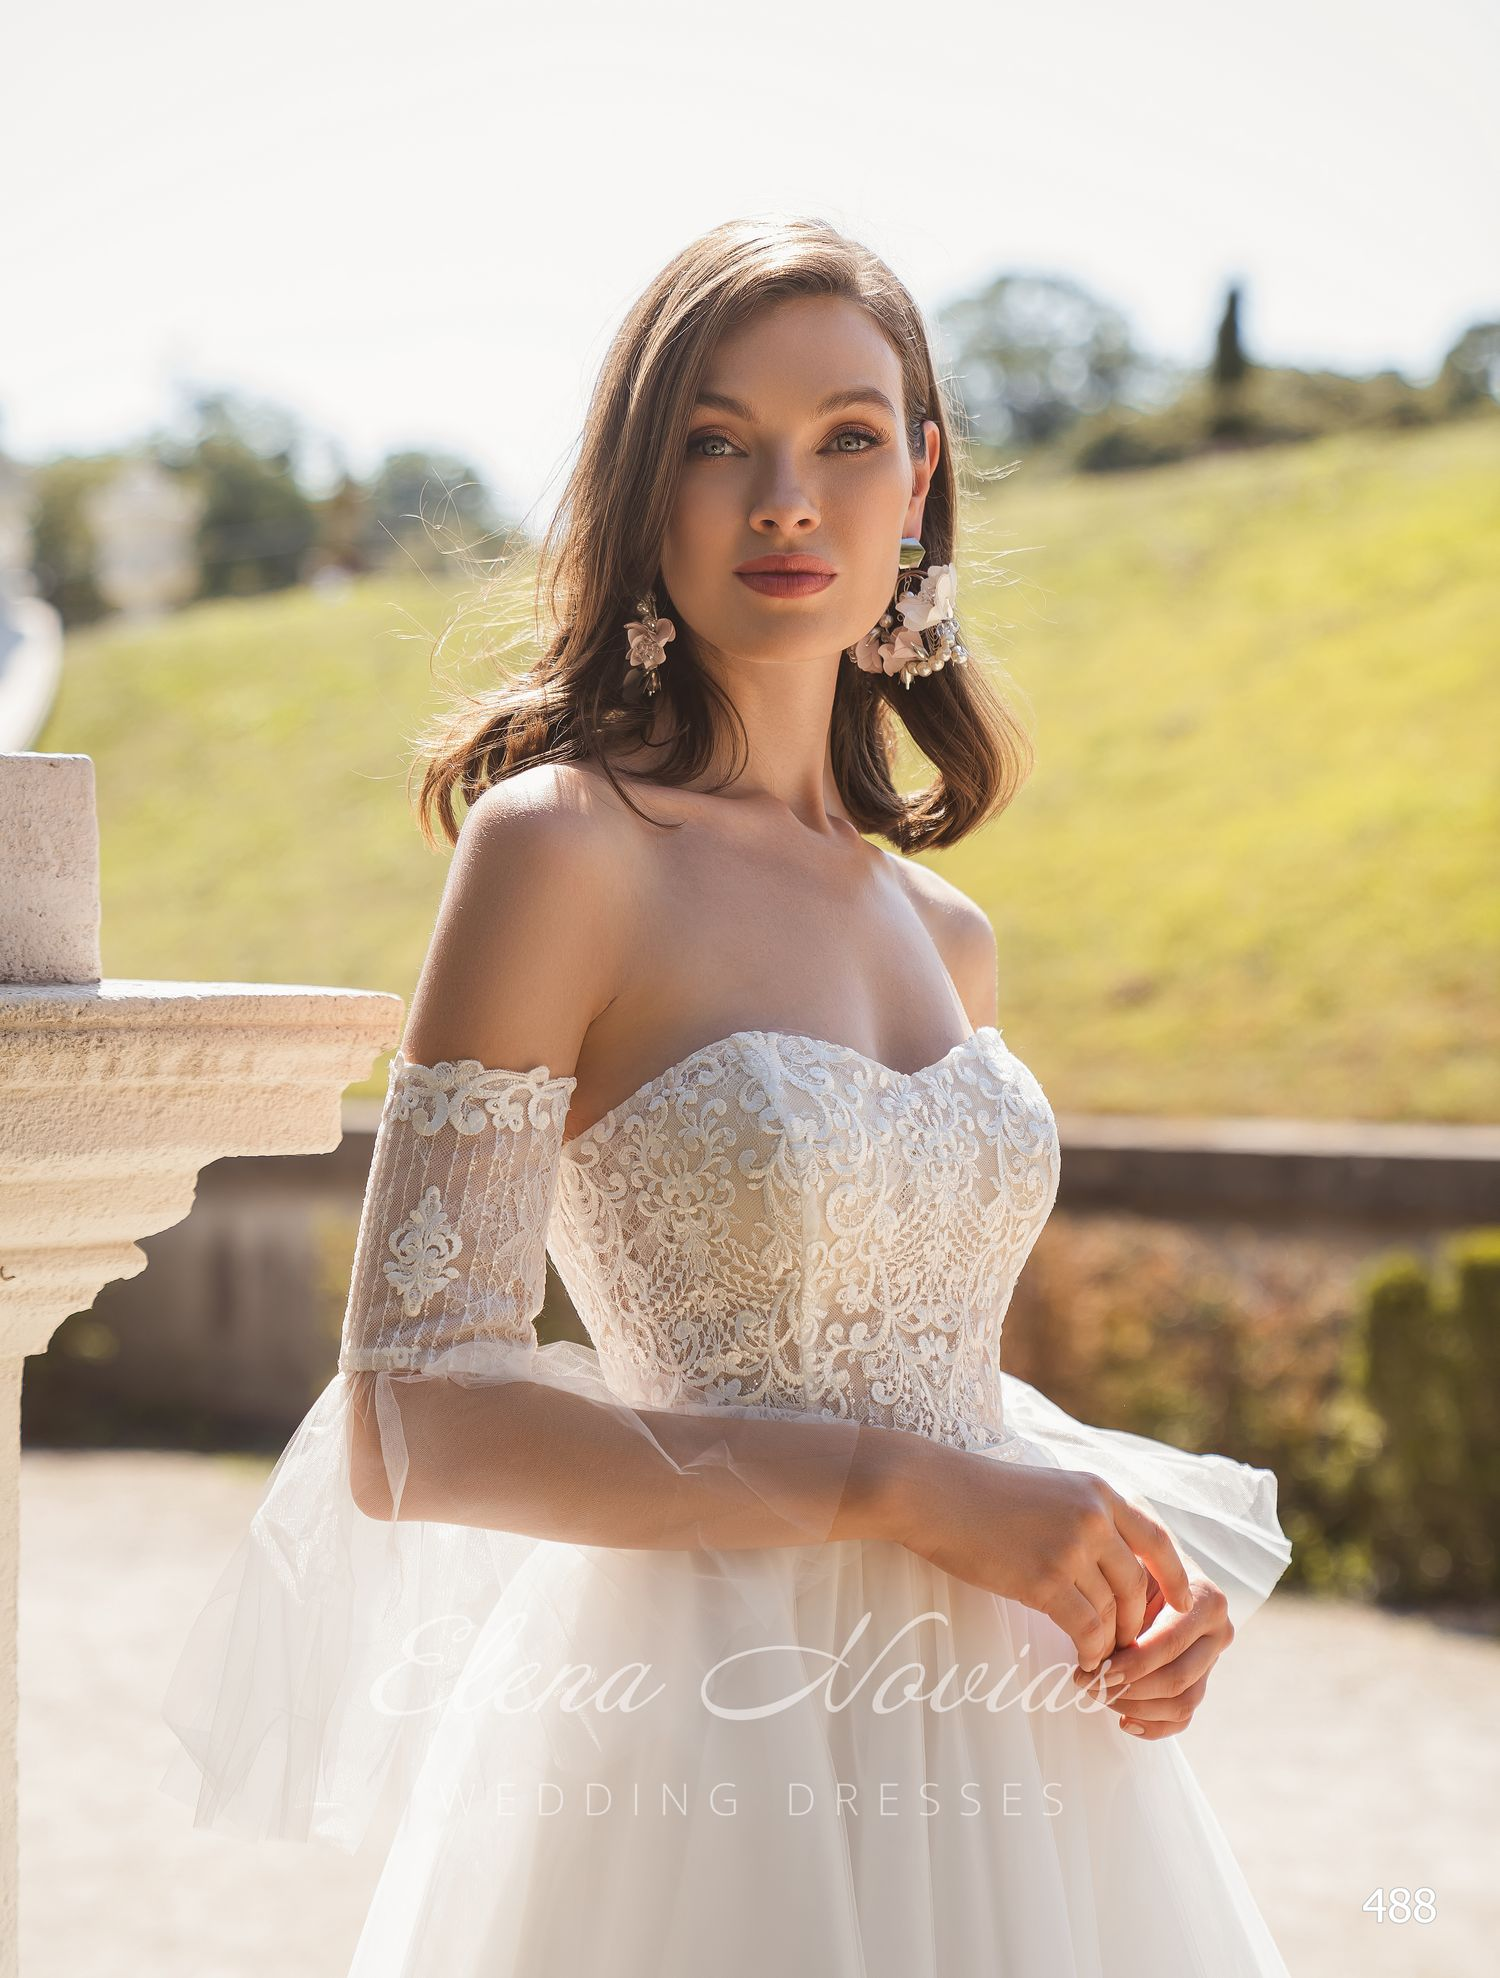 Wedding dresses 488 1